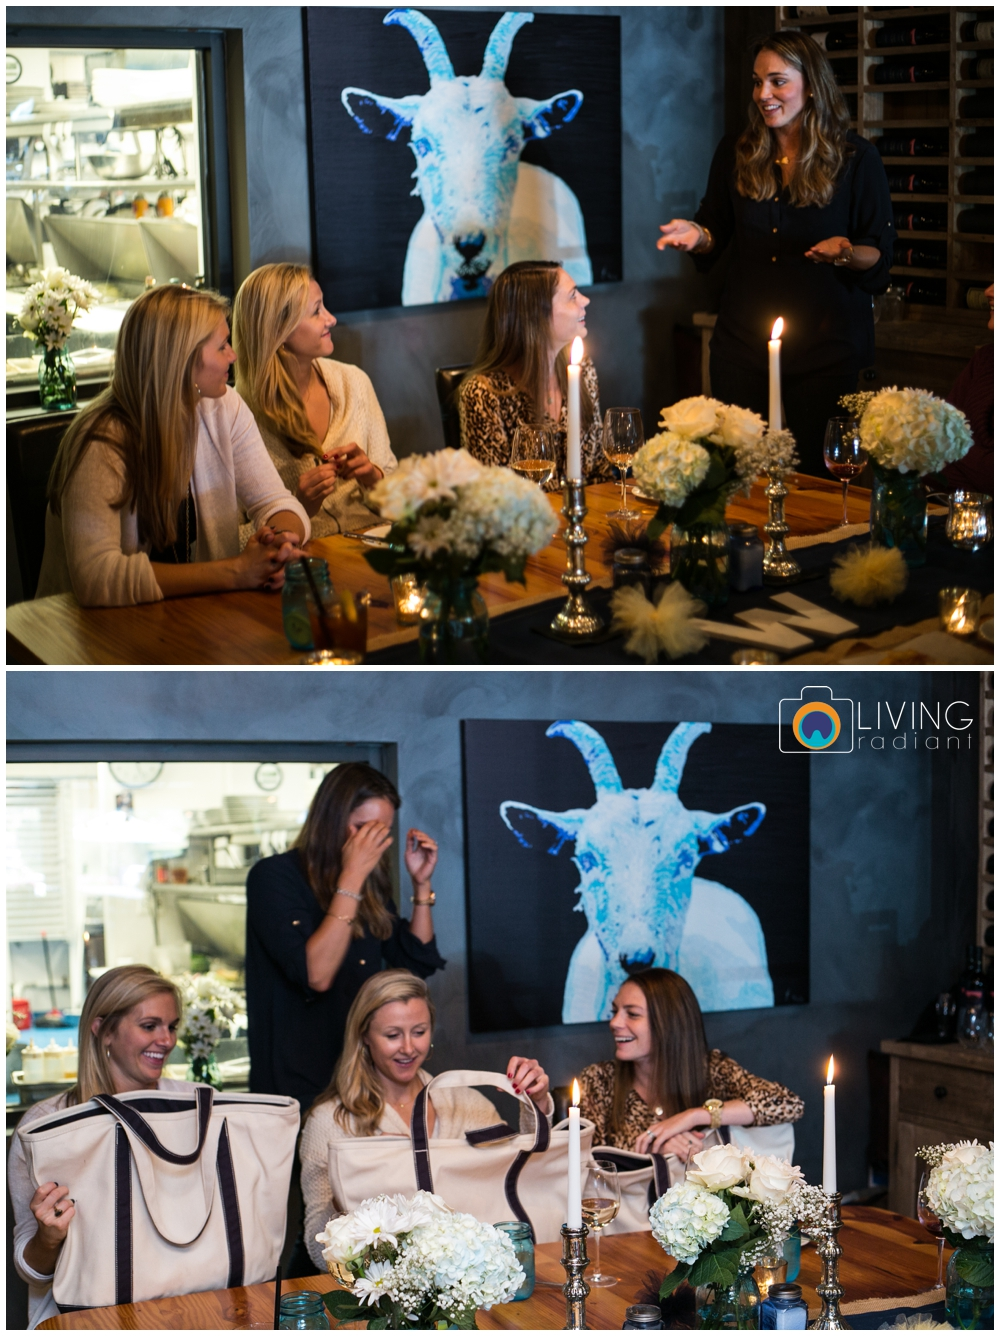 krissys-bridesmaid-luncheon-the-blue-goat-richmond-virginia-living-radiant-photography_0008.jpg